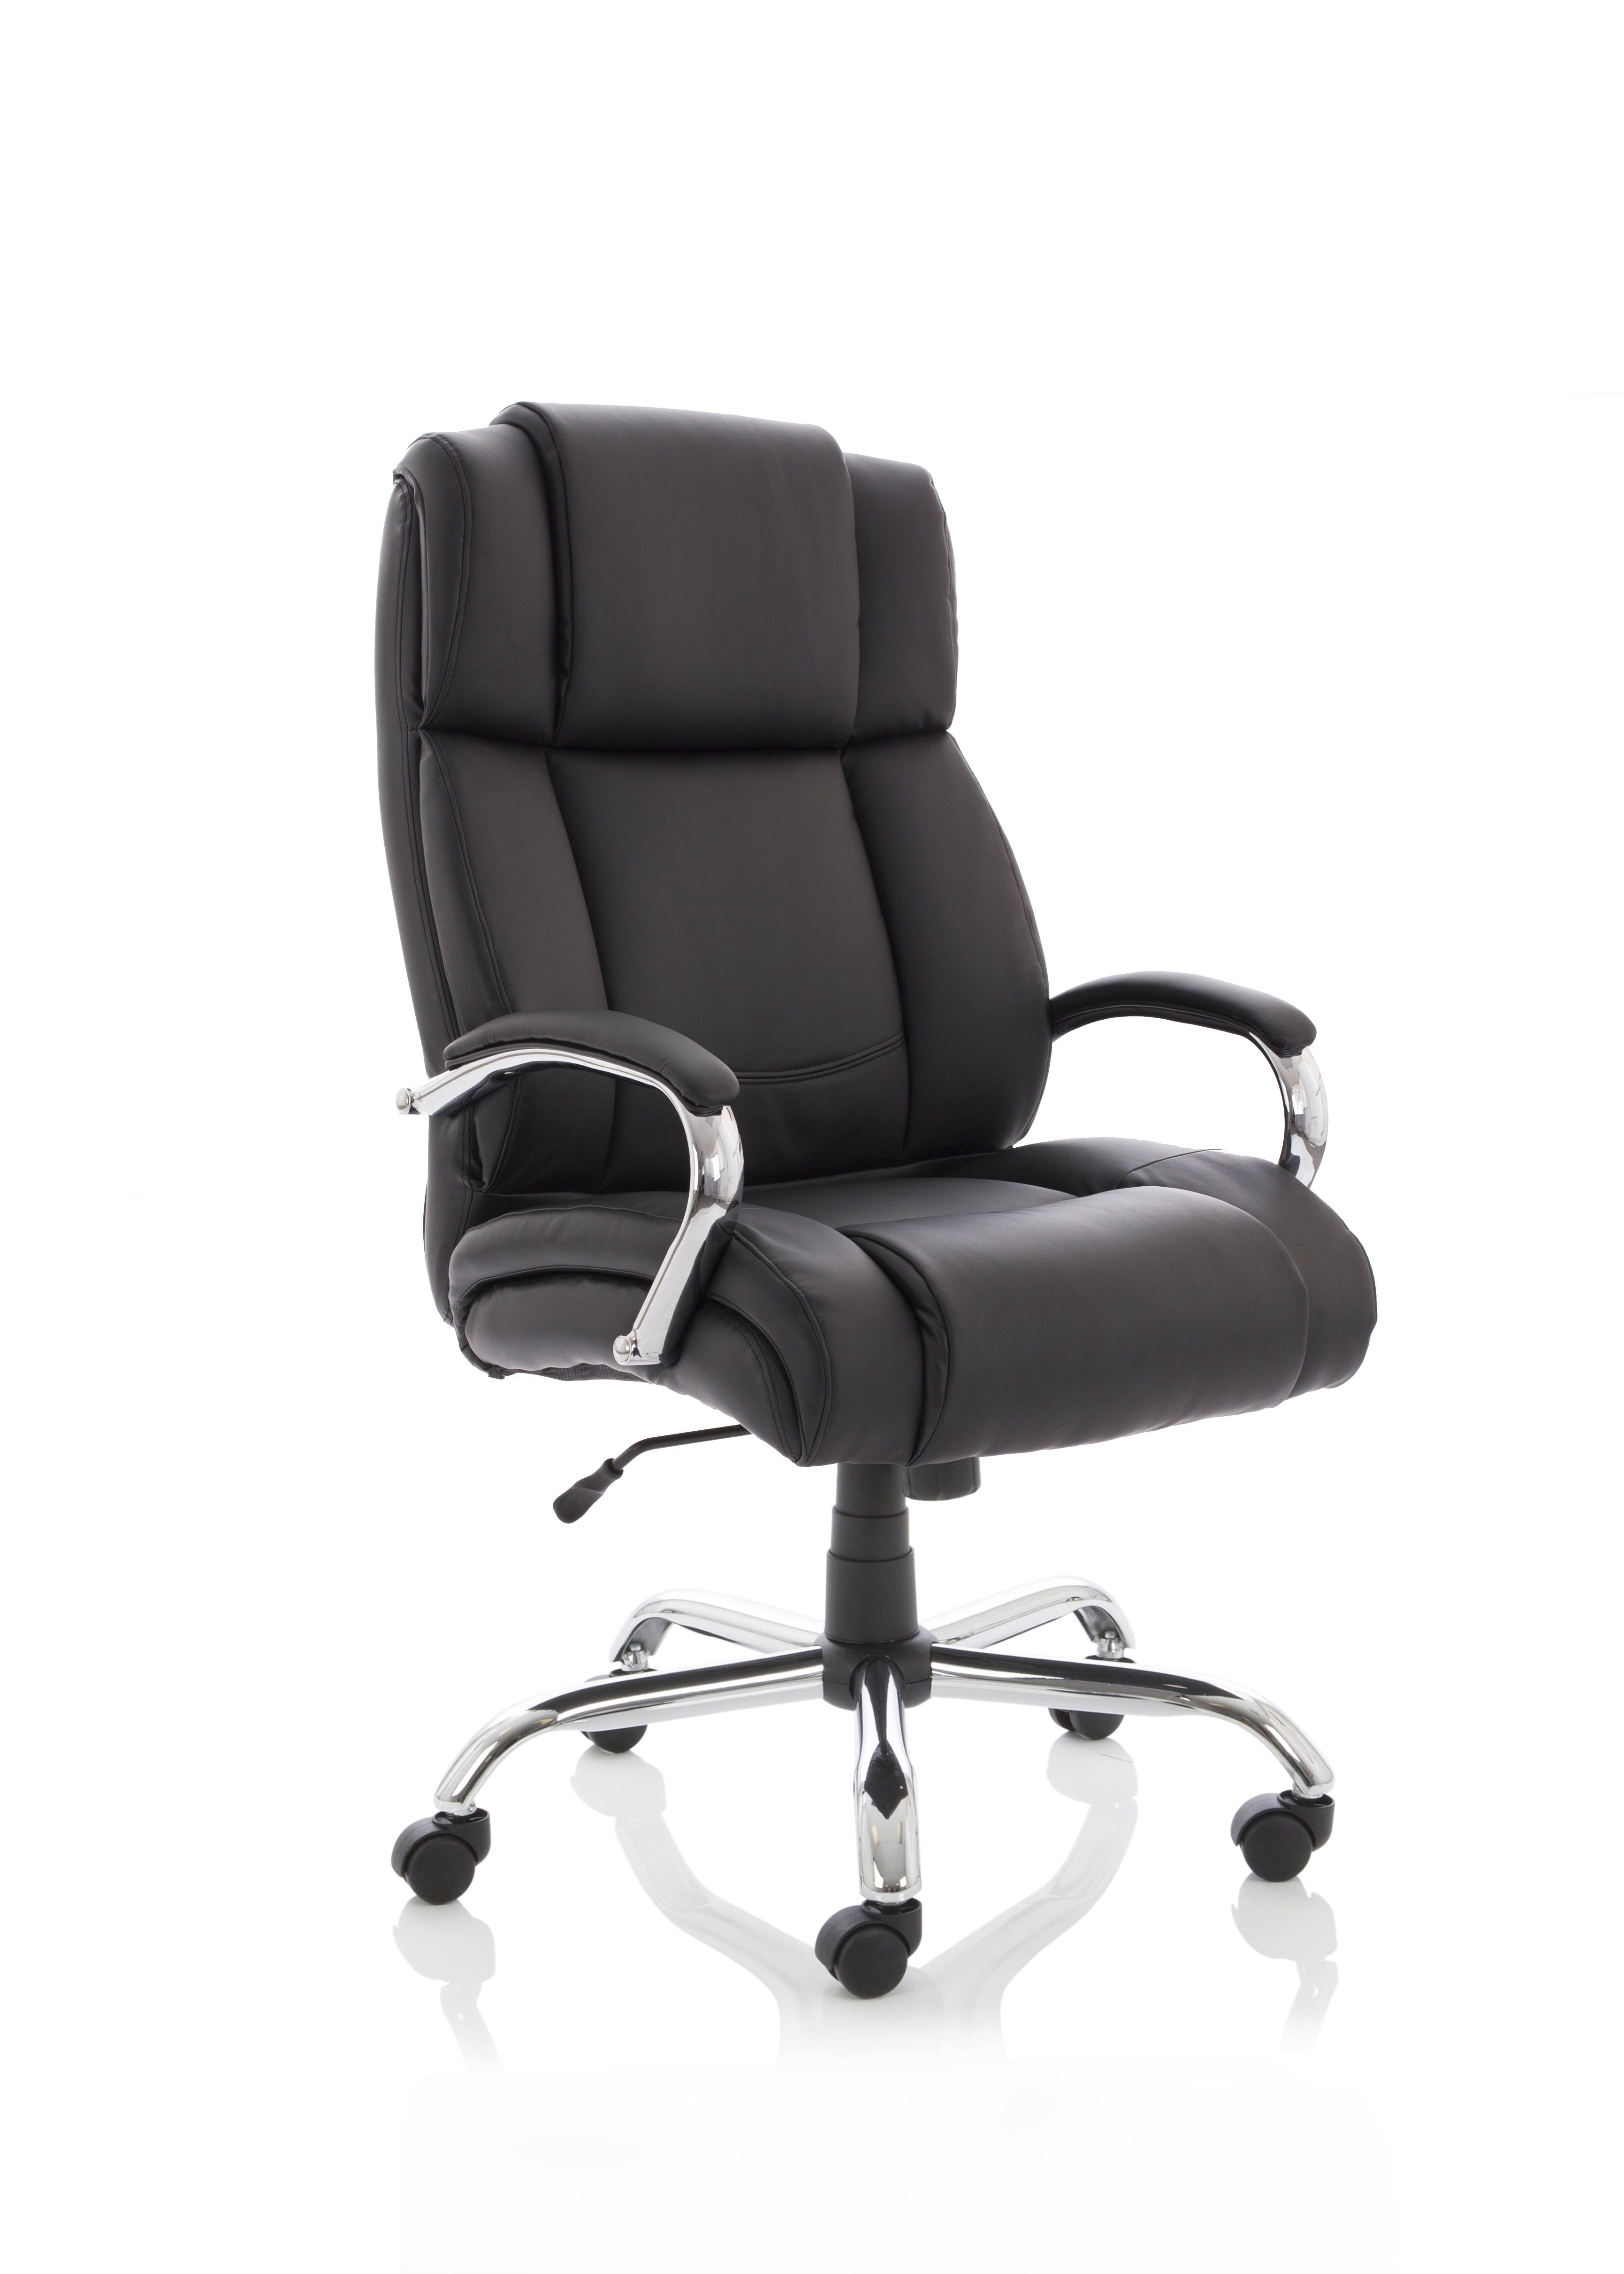 Executive Chairs Texas Black Soft Bonded Leather EX000115